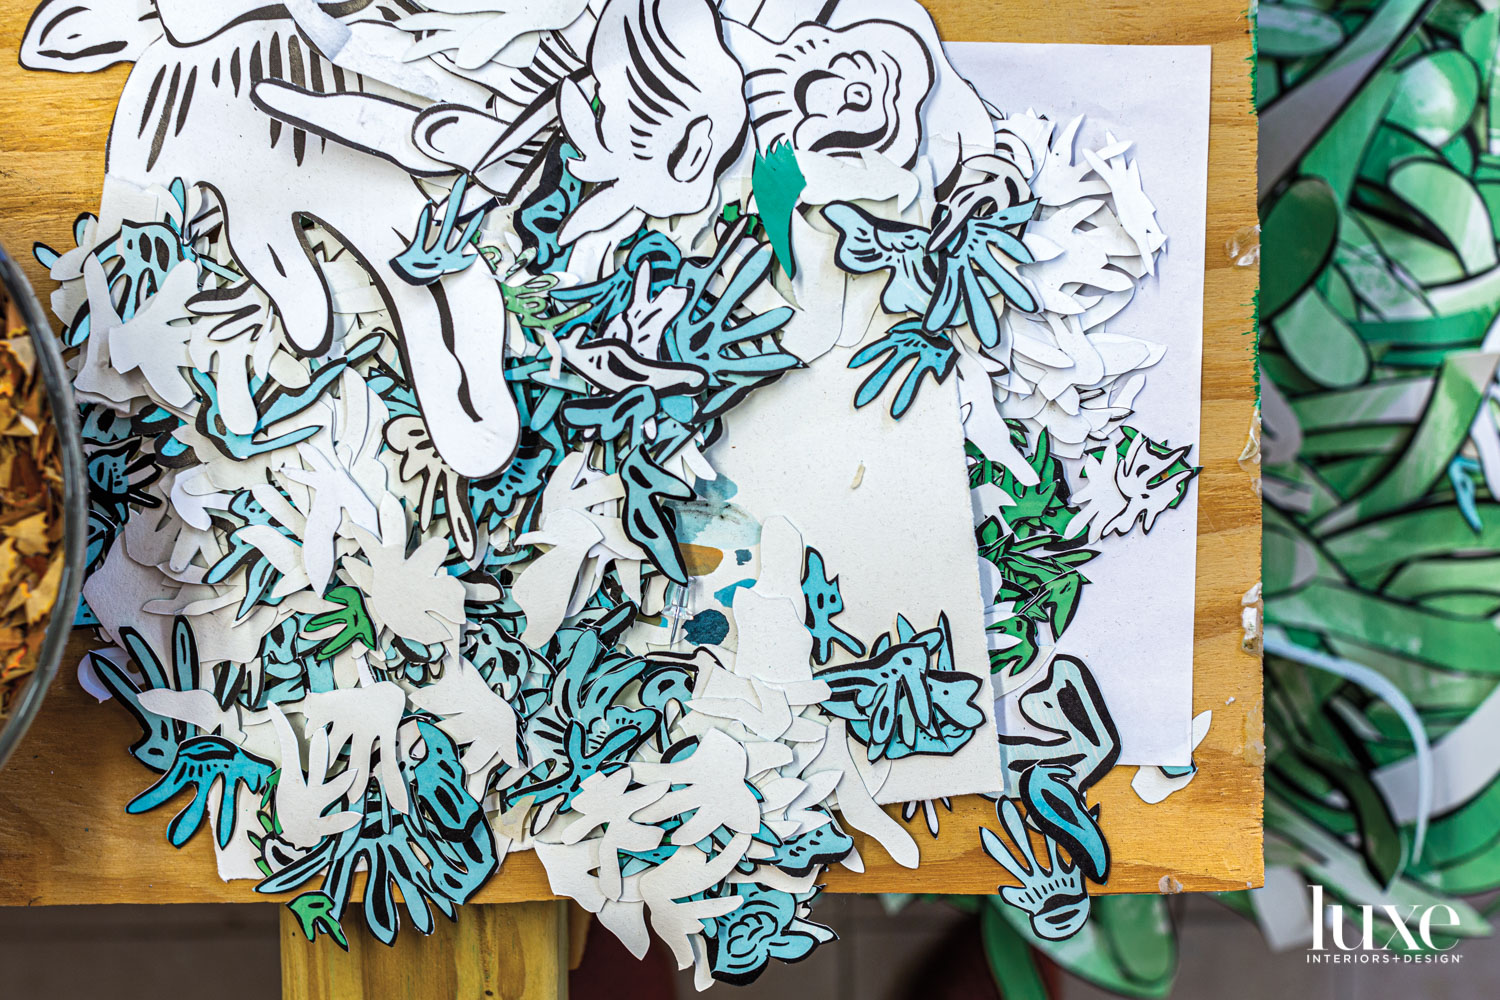 collage material created by cutting and coloring paper